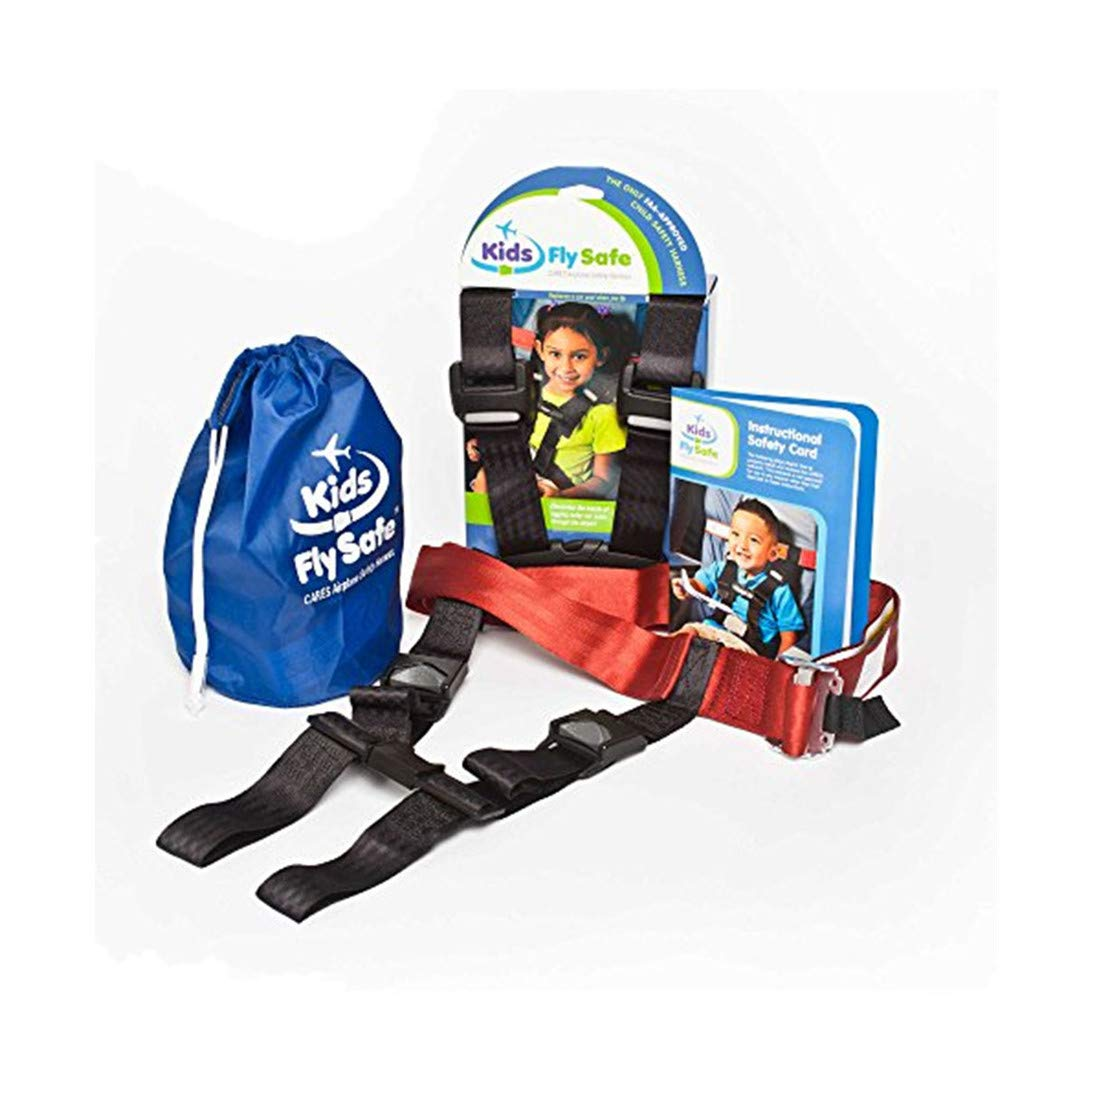 Travel Fly Safety Harness , Child Airplane Fly Seat Belt ,Cares Safety Restraint System, FAA Approved Device